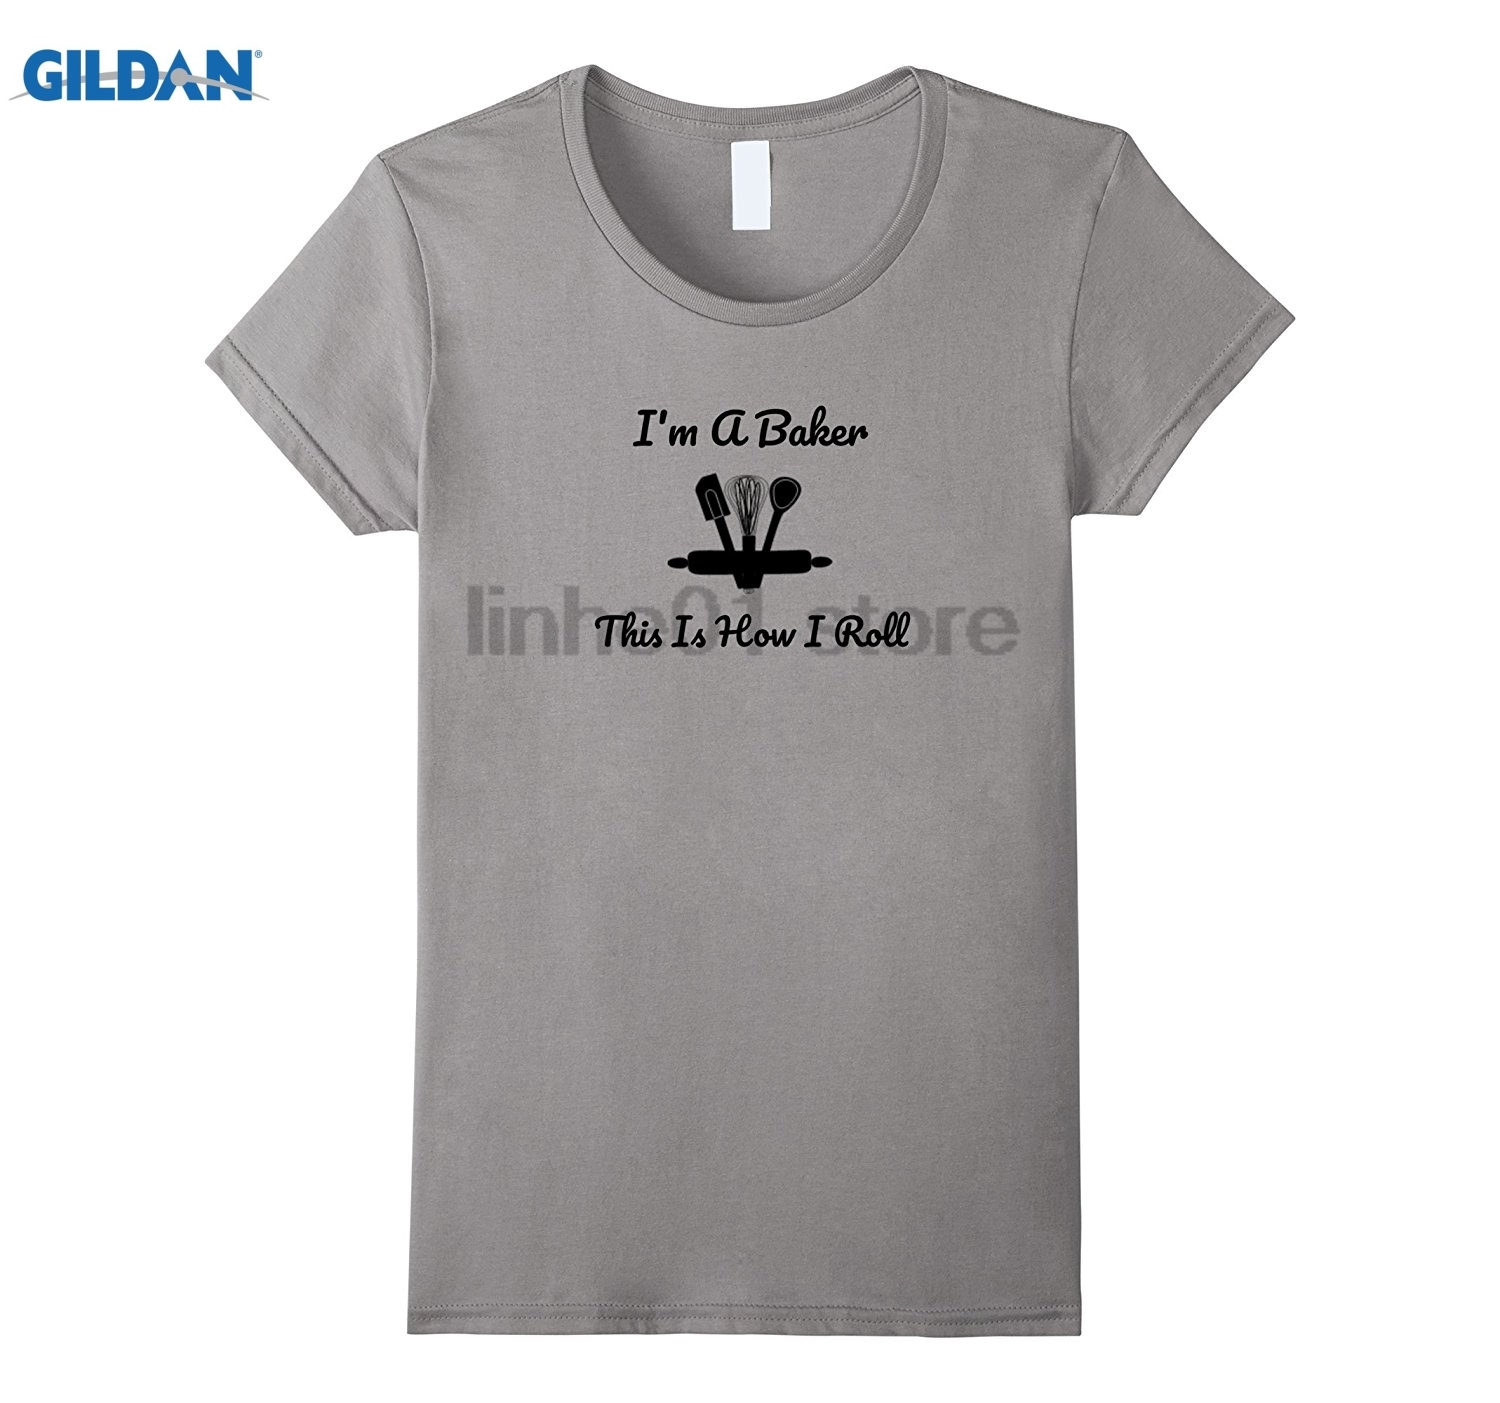 GILDAN Im a Baker and This is How I Roll Womens T-shirt